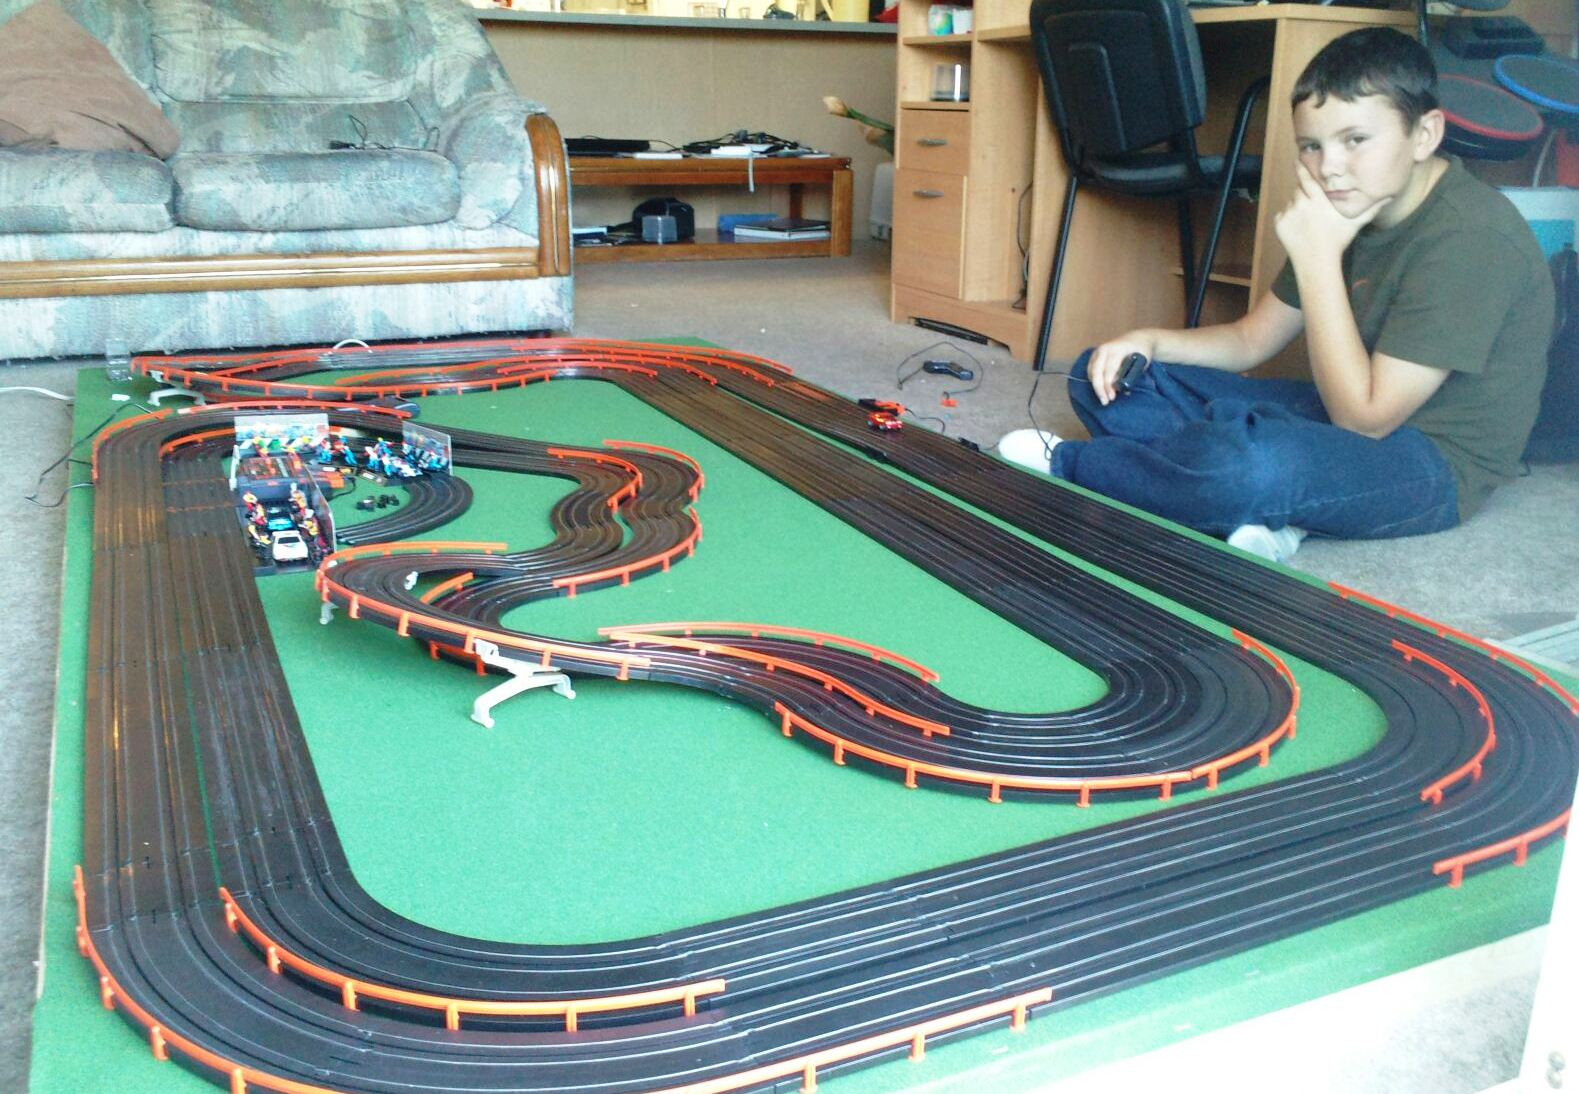 drag slot car racing with Ho Slot Car Scenery Track Project on 2005 1 as well POD 030803 additionally Slotters weebly further Index also 143763413078663492.